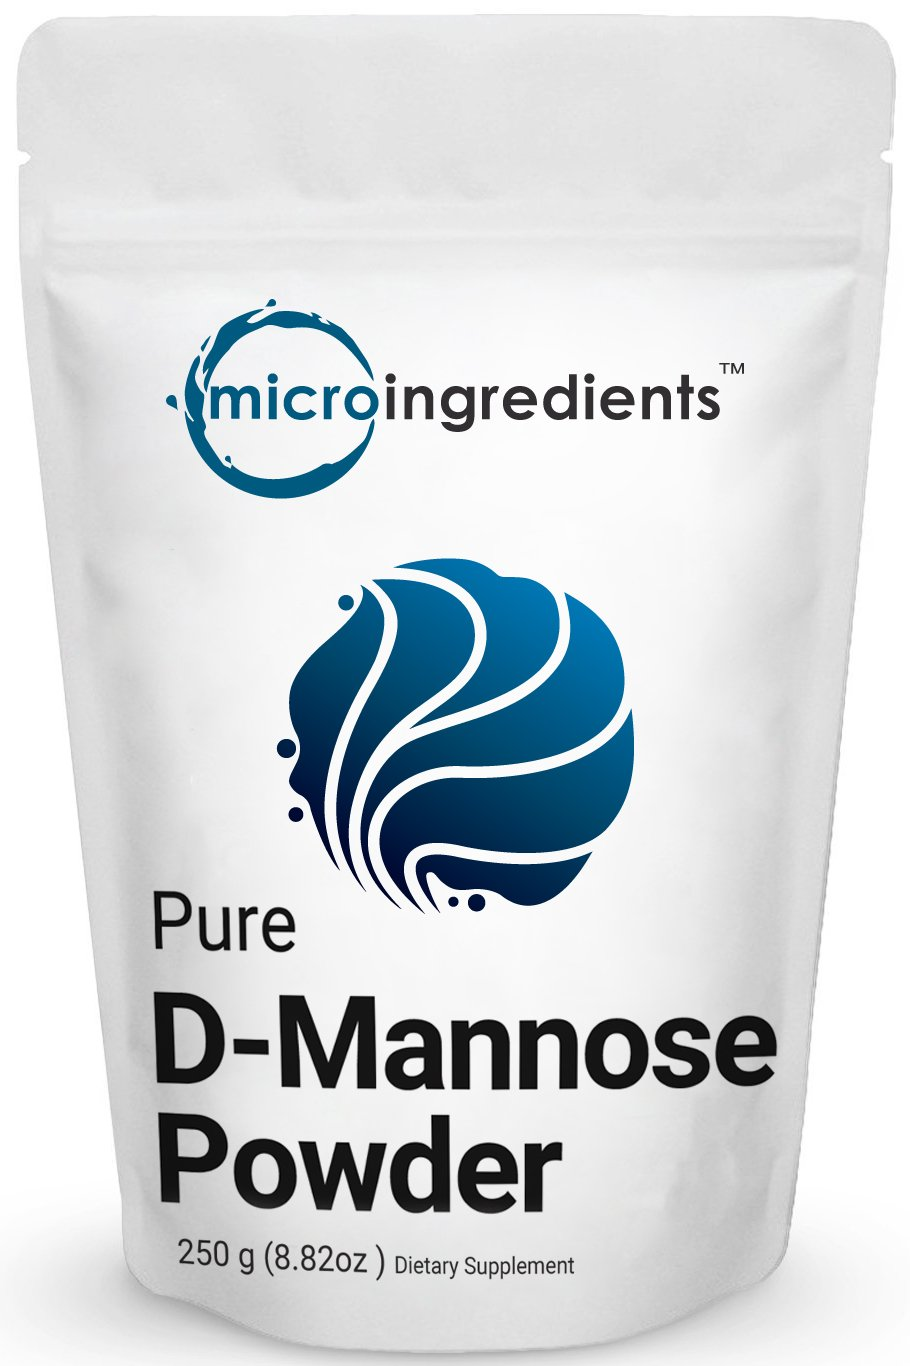 Micro Ingredients Pure D-Mannose Powder 8.8 Ounce (250 grams), Powerful Urinary Tract Cleanse. Non-GMO and Vegan Friendly.